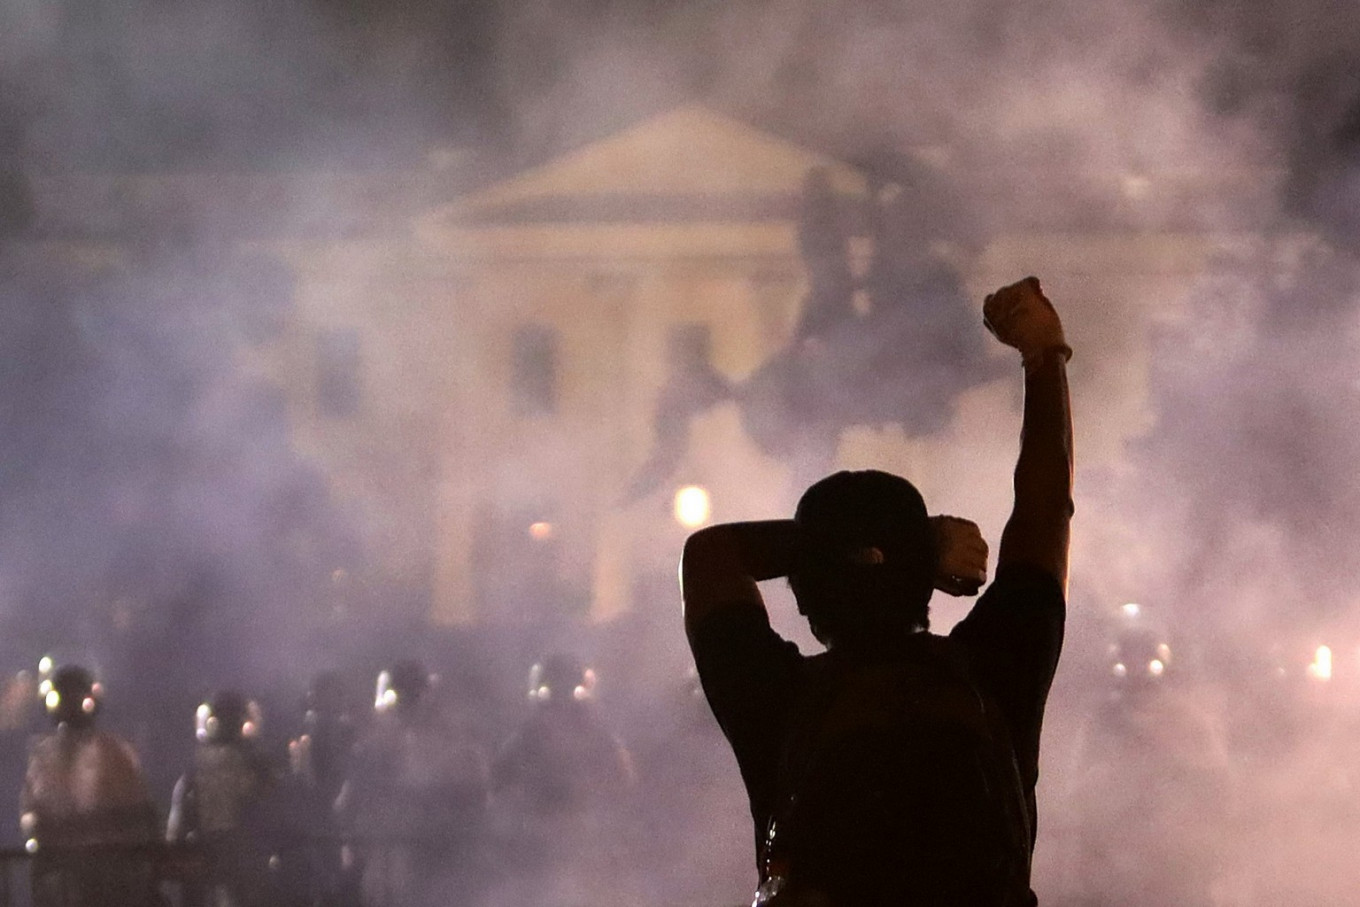 A man holds up his fist during a protest near the White House on May 31, 2020 in Washington, DC. Minneapolis police officer Derek Chauvin was arrested for Floyd's death and is accused of kneeling on Floyd's neck as he pleaded with him about not being able to breathe. Floyd was pronounced dead a short while later. Chauvin and three other officers, who were involved in the arrest. AFP/Getty Images/Alex Wong